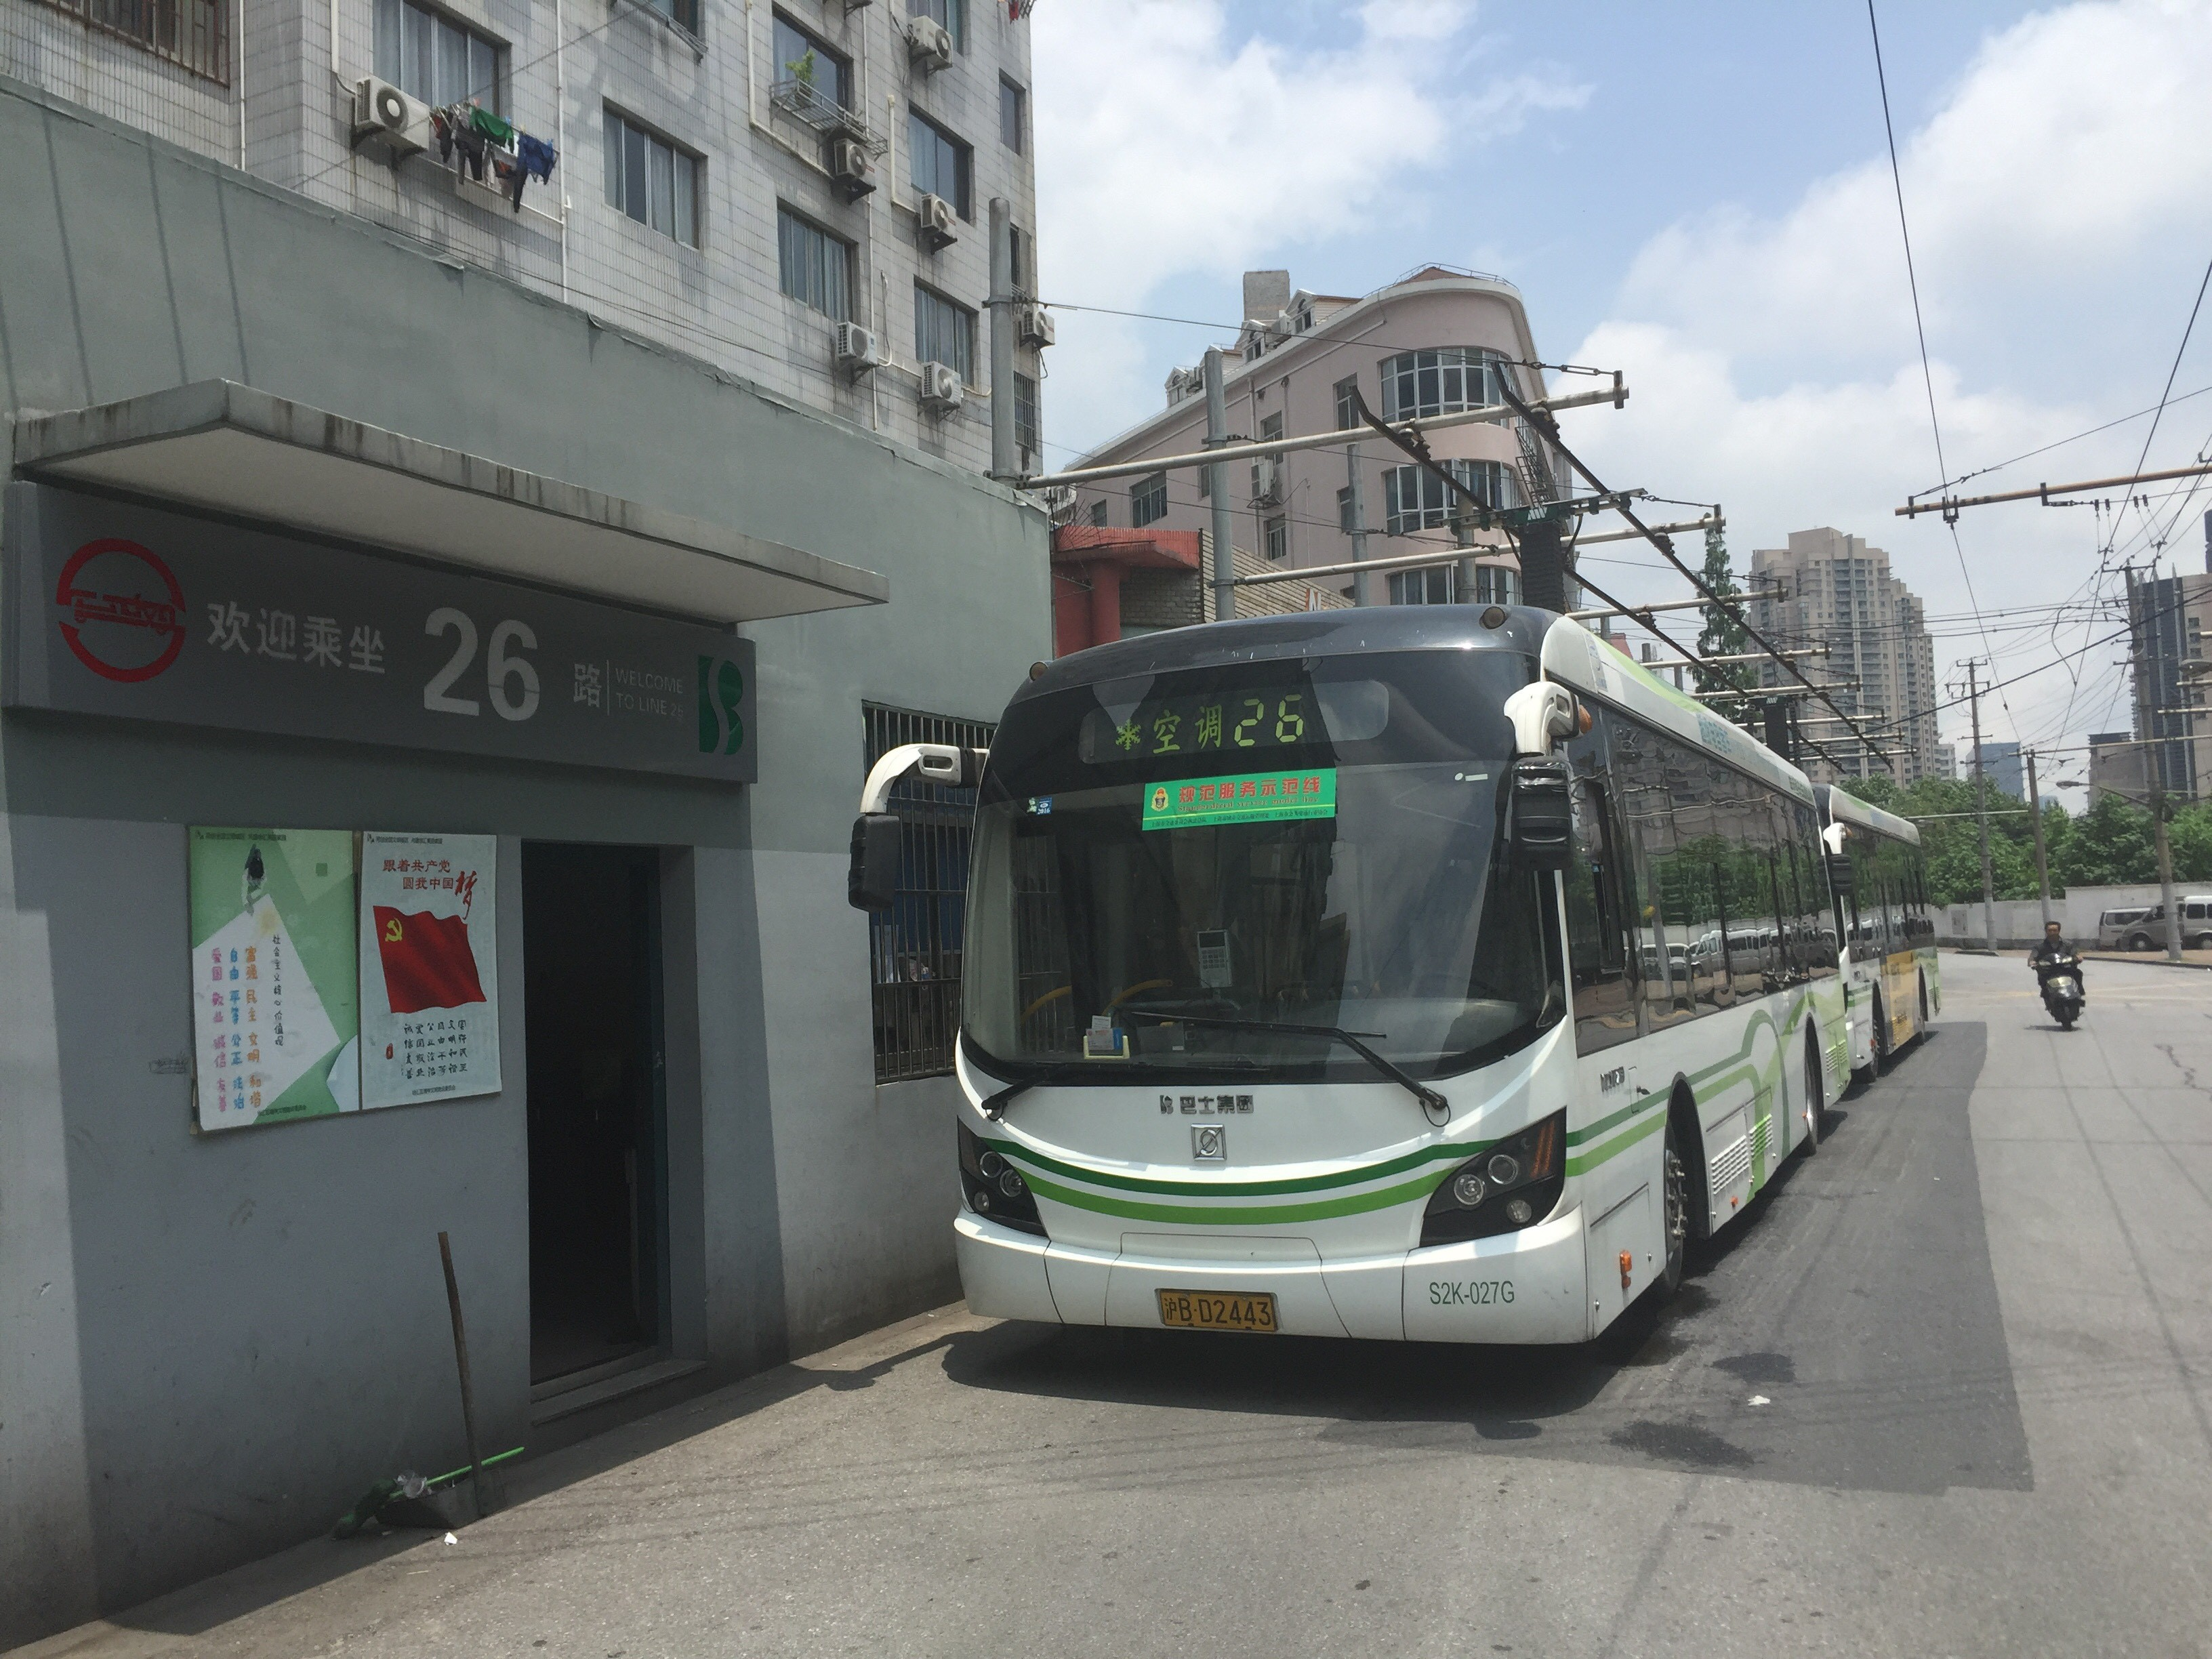 New Route 26 Bus